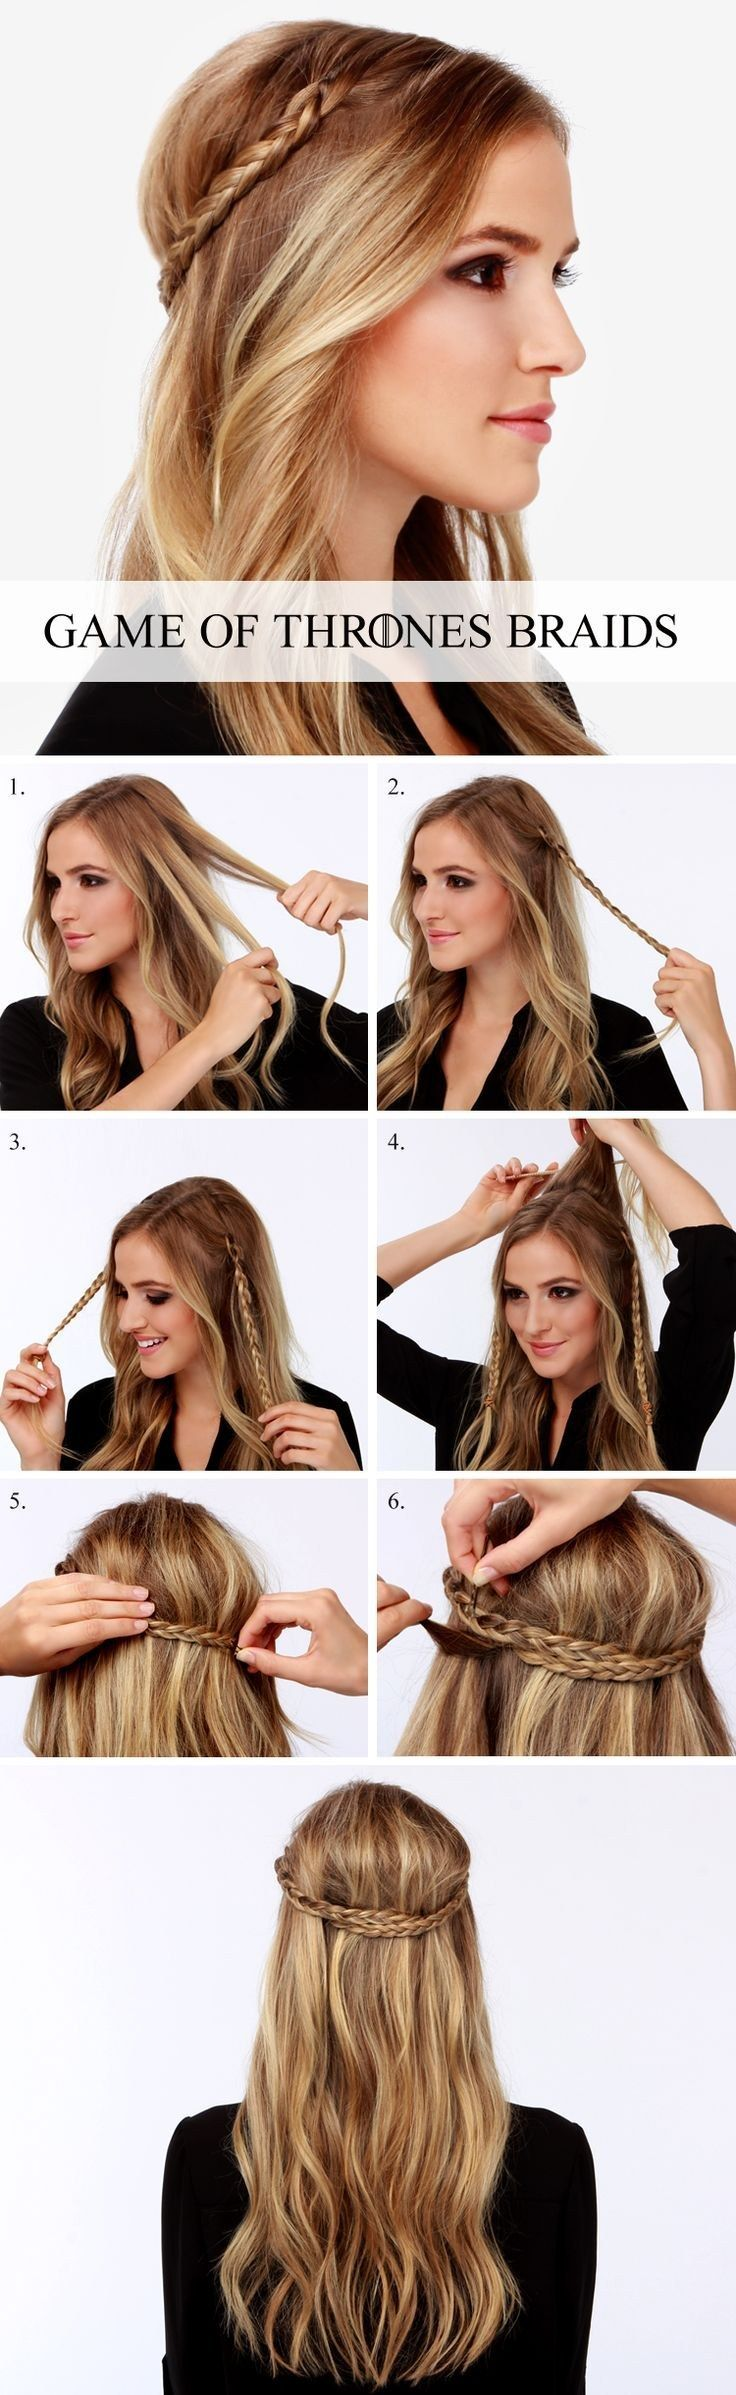 <b>So how easy are most hair tutorials, anyway?</b> With SLIDEY THING!